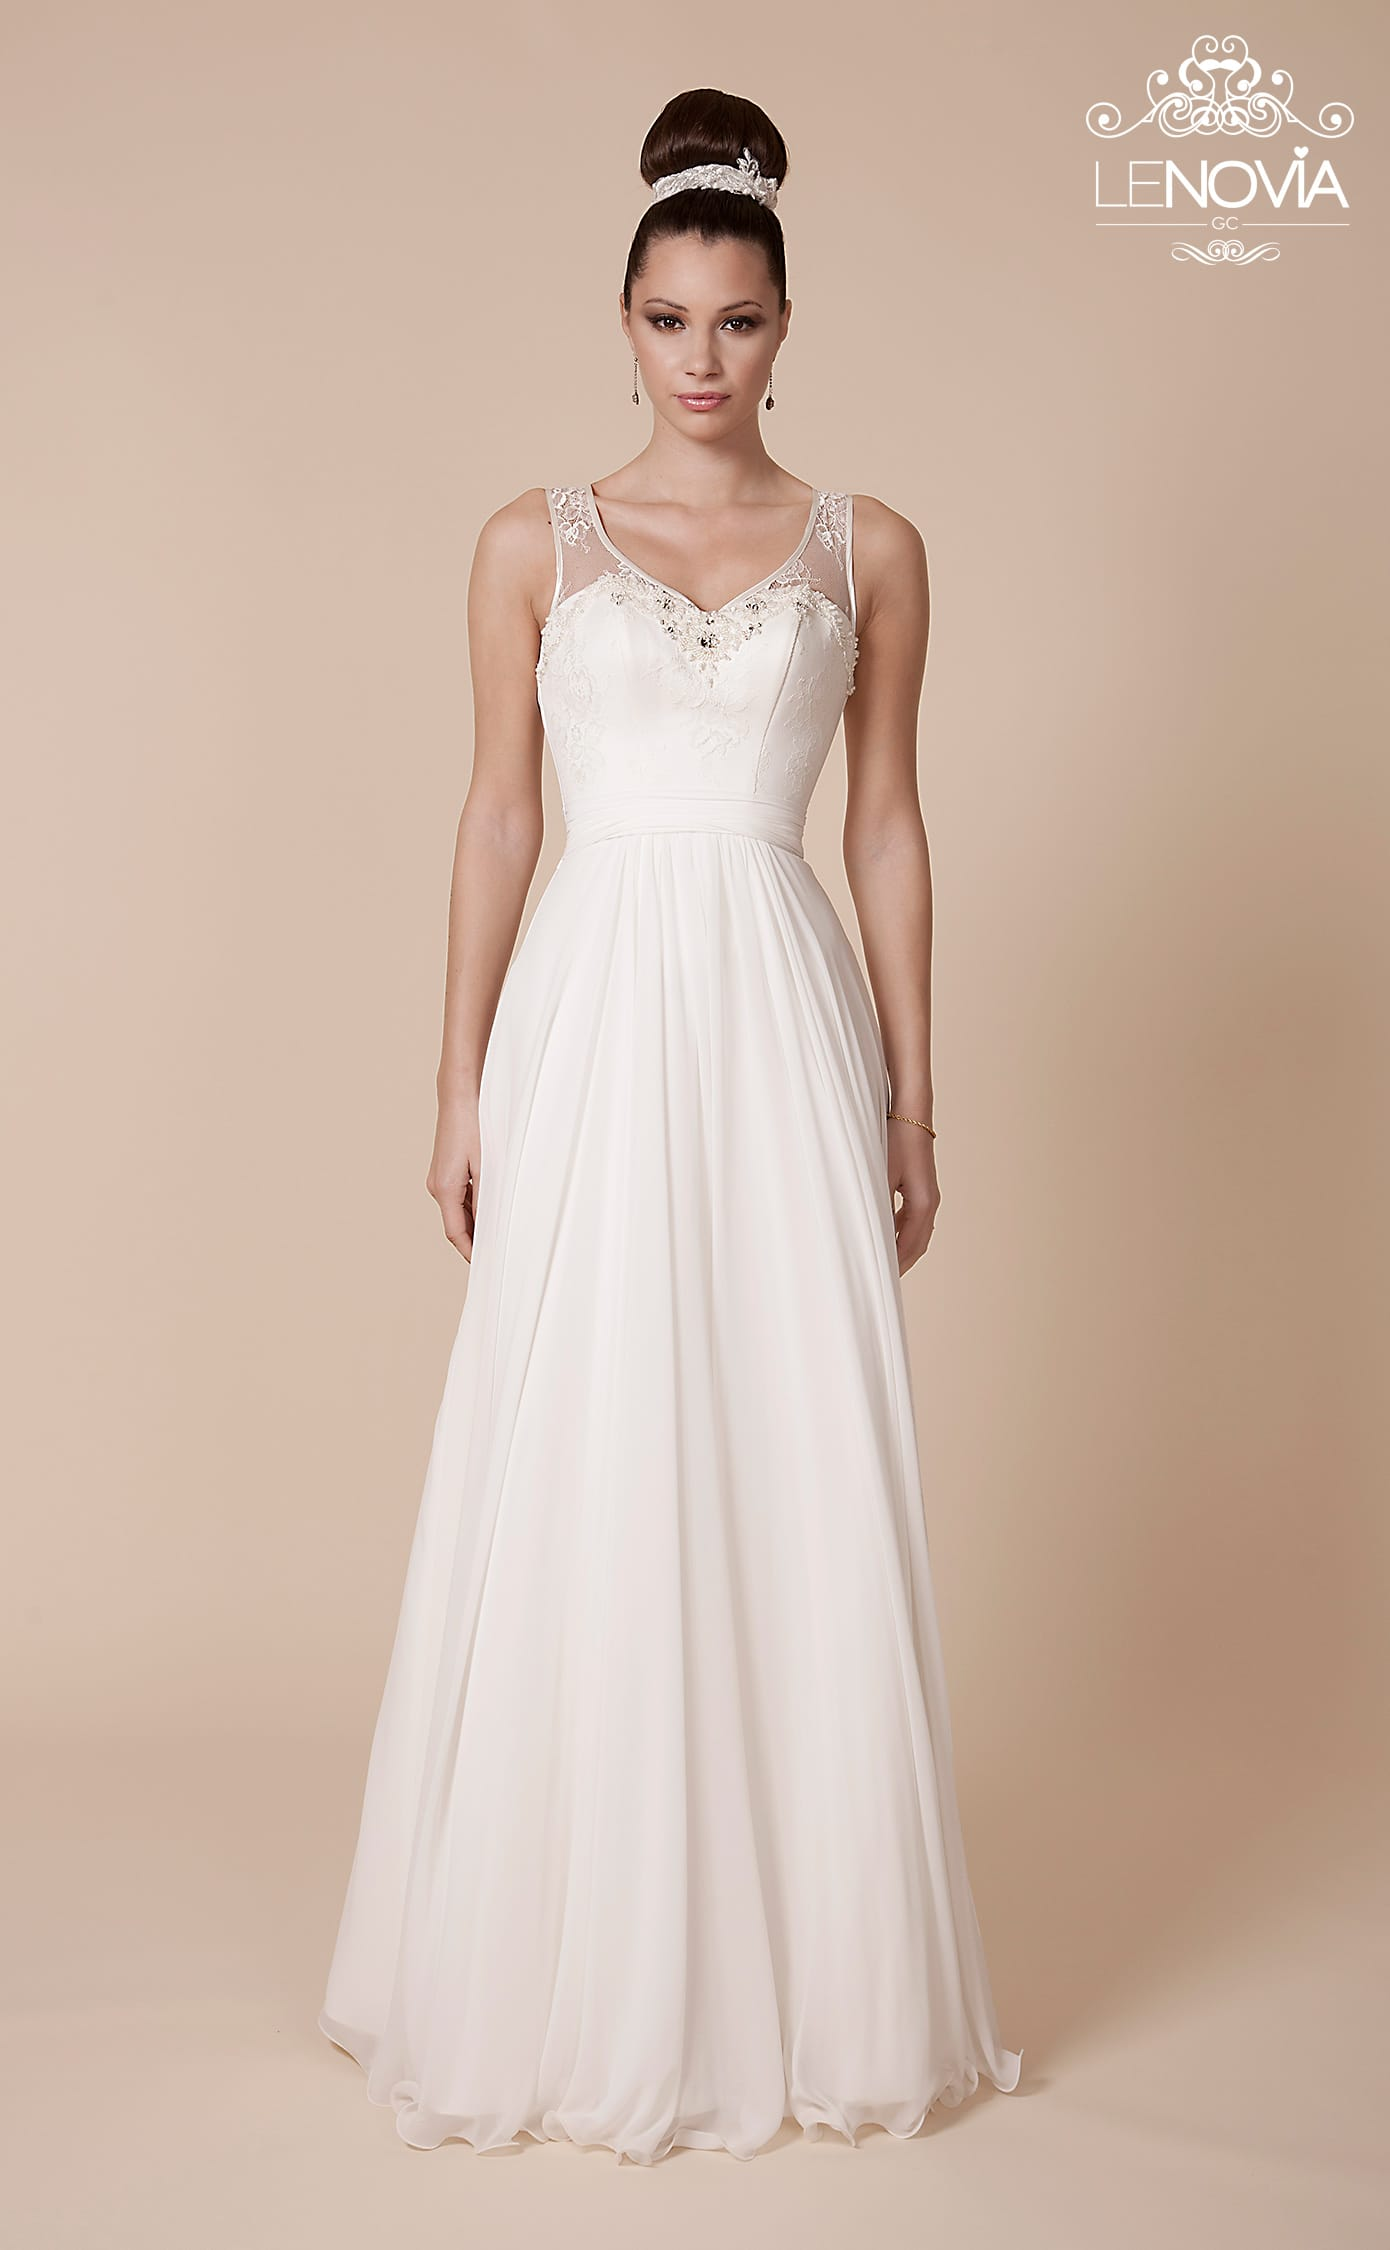 Lenovia sell my wedding dress online sell my wedding for Purchase wedding dress online